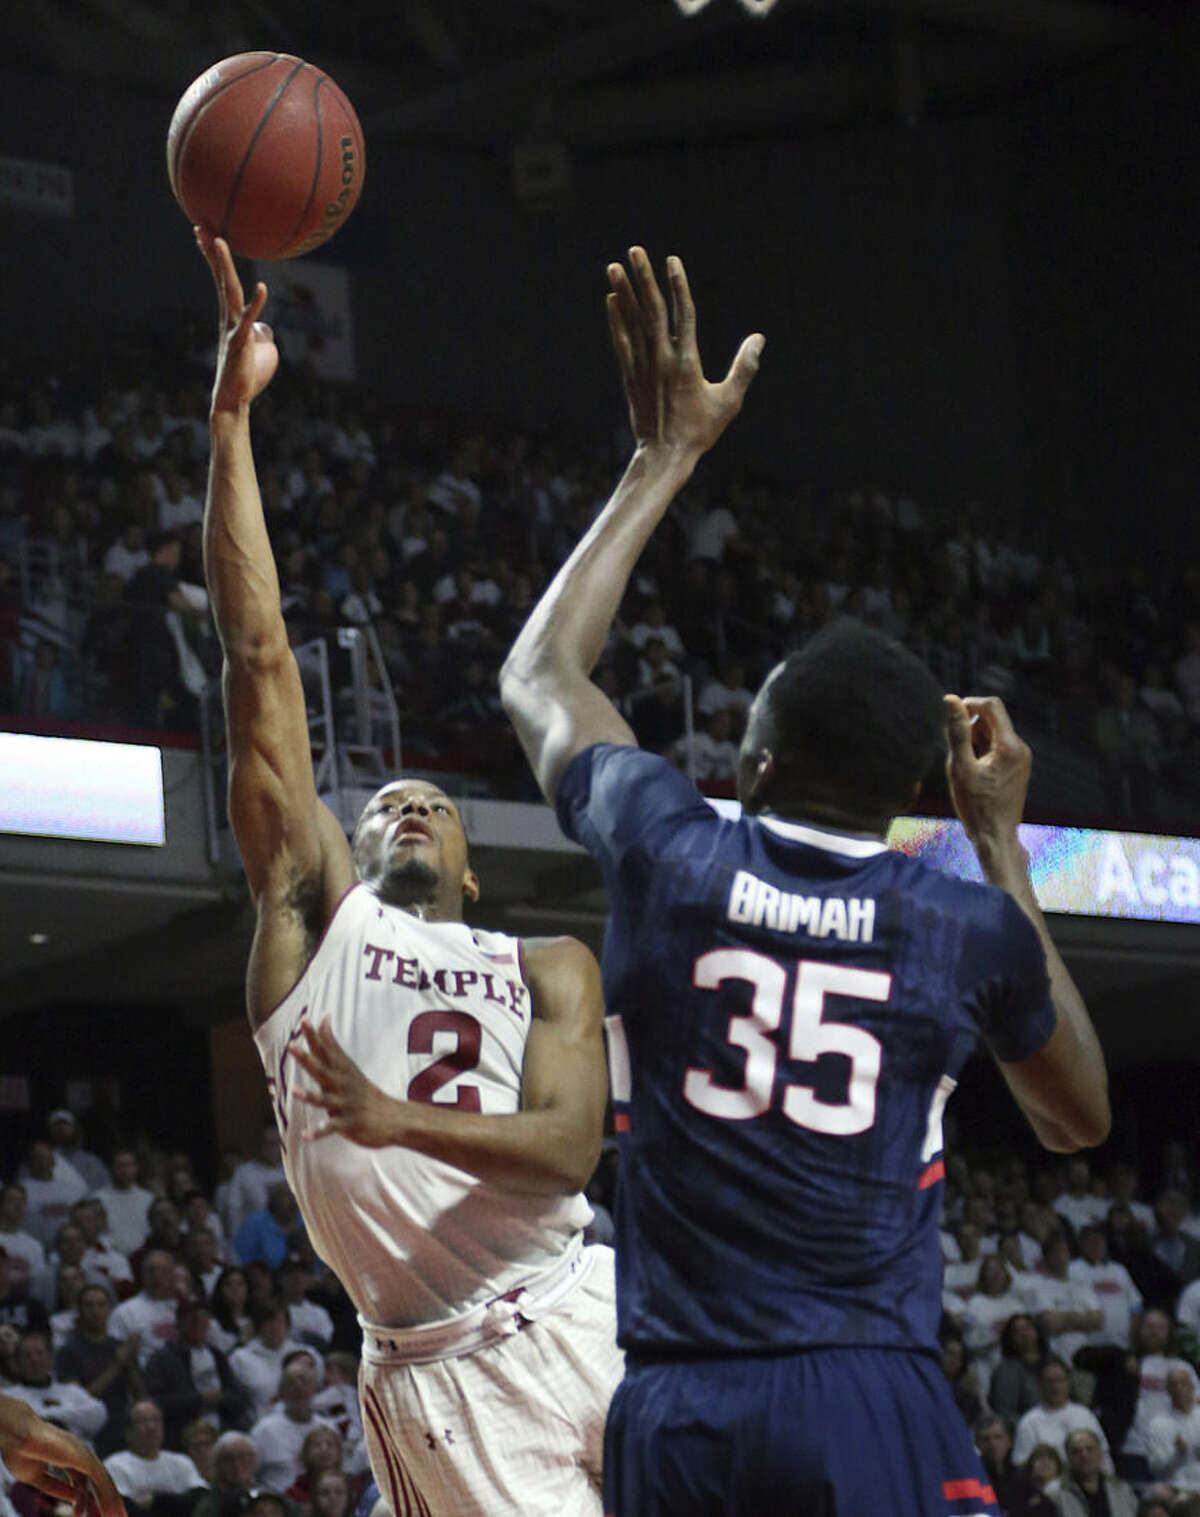 Temple guard Will Cummings (2) takes a shot past Connecticut center Amida Brimah (35) in the second half of an NCAA college basketball game, Saturday, March 7, 2015, in Philadelphia. Temple won 75-63. (AP Photo/Laurence Kesterson)